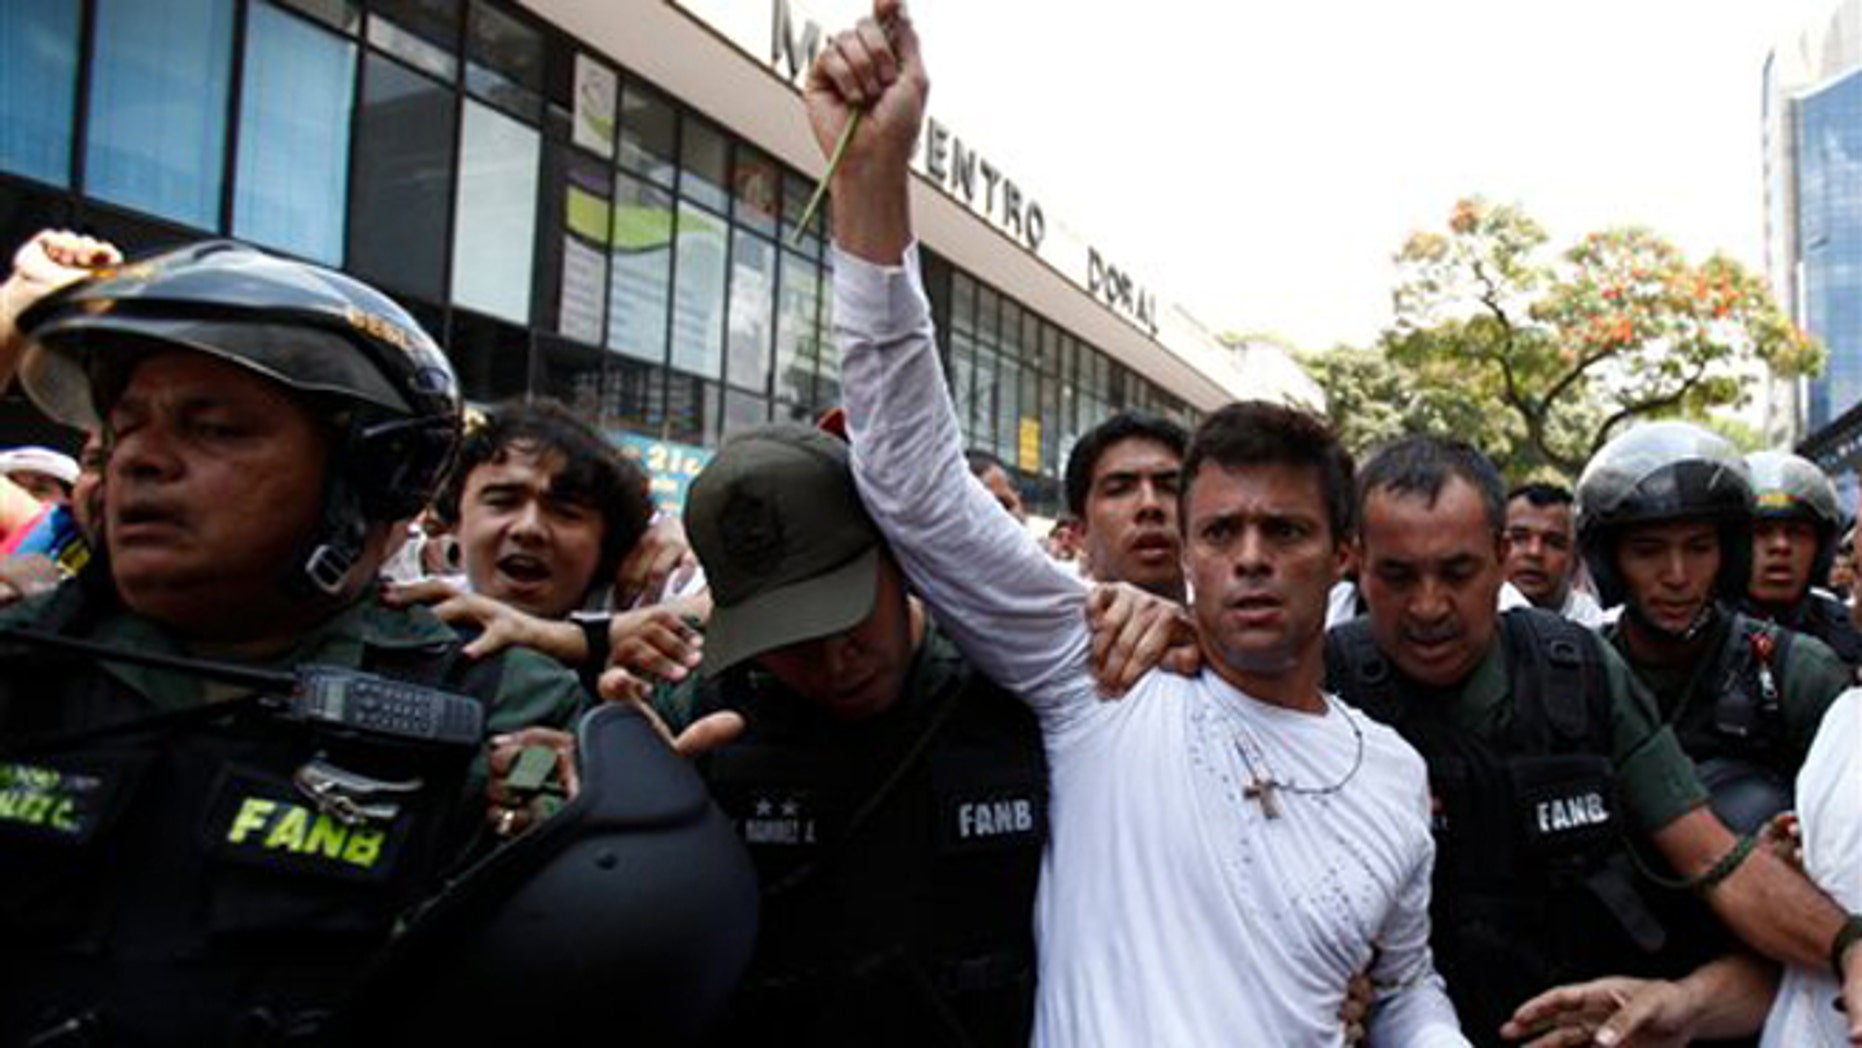 Opposition leader Leopoldo Lopez, dressed in white and holding up a flower stem, is taken into custody by Bolivarian National Guards, in Caracas, Venezuela, Tuesday, Feb 18, 2014. Lopez re-emerged from days of hiding to address an anti-government demonstration and then he turned himself in to authorities Tuesday. Speaking to some 5,000 supporters with a megaphone, Lopez said that he doesn't fear going to jail to defend his beliefs and constitutional right to peacefully protest against President Nicolas Maduro. (AP Photo/Alejandro Cegarra)